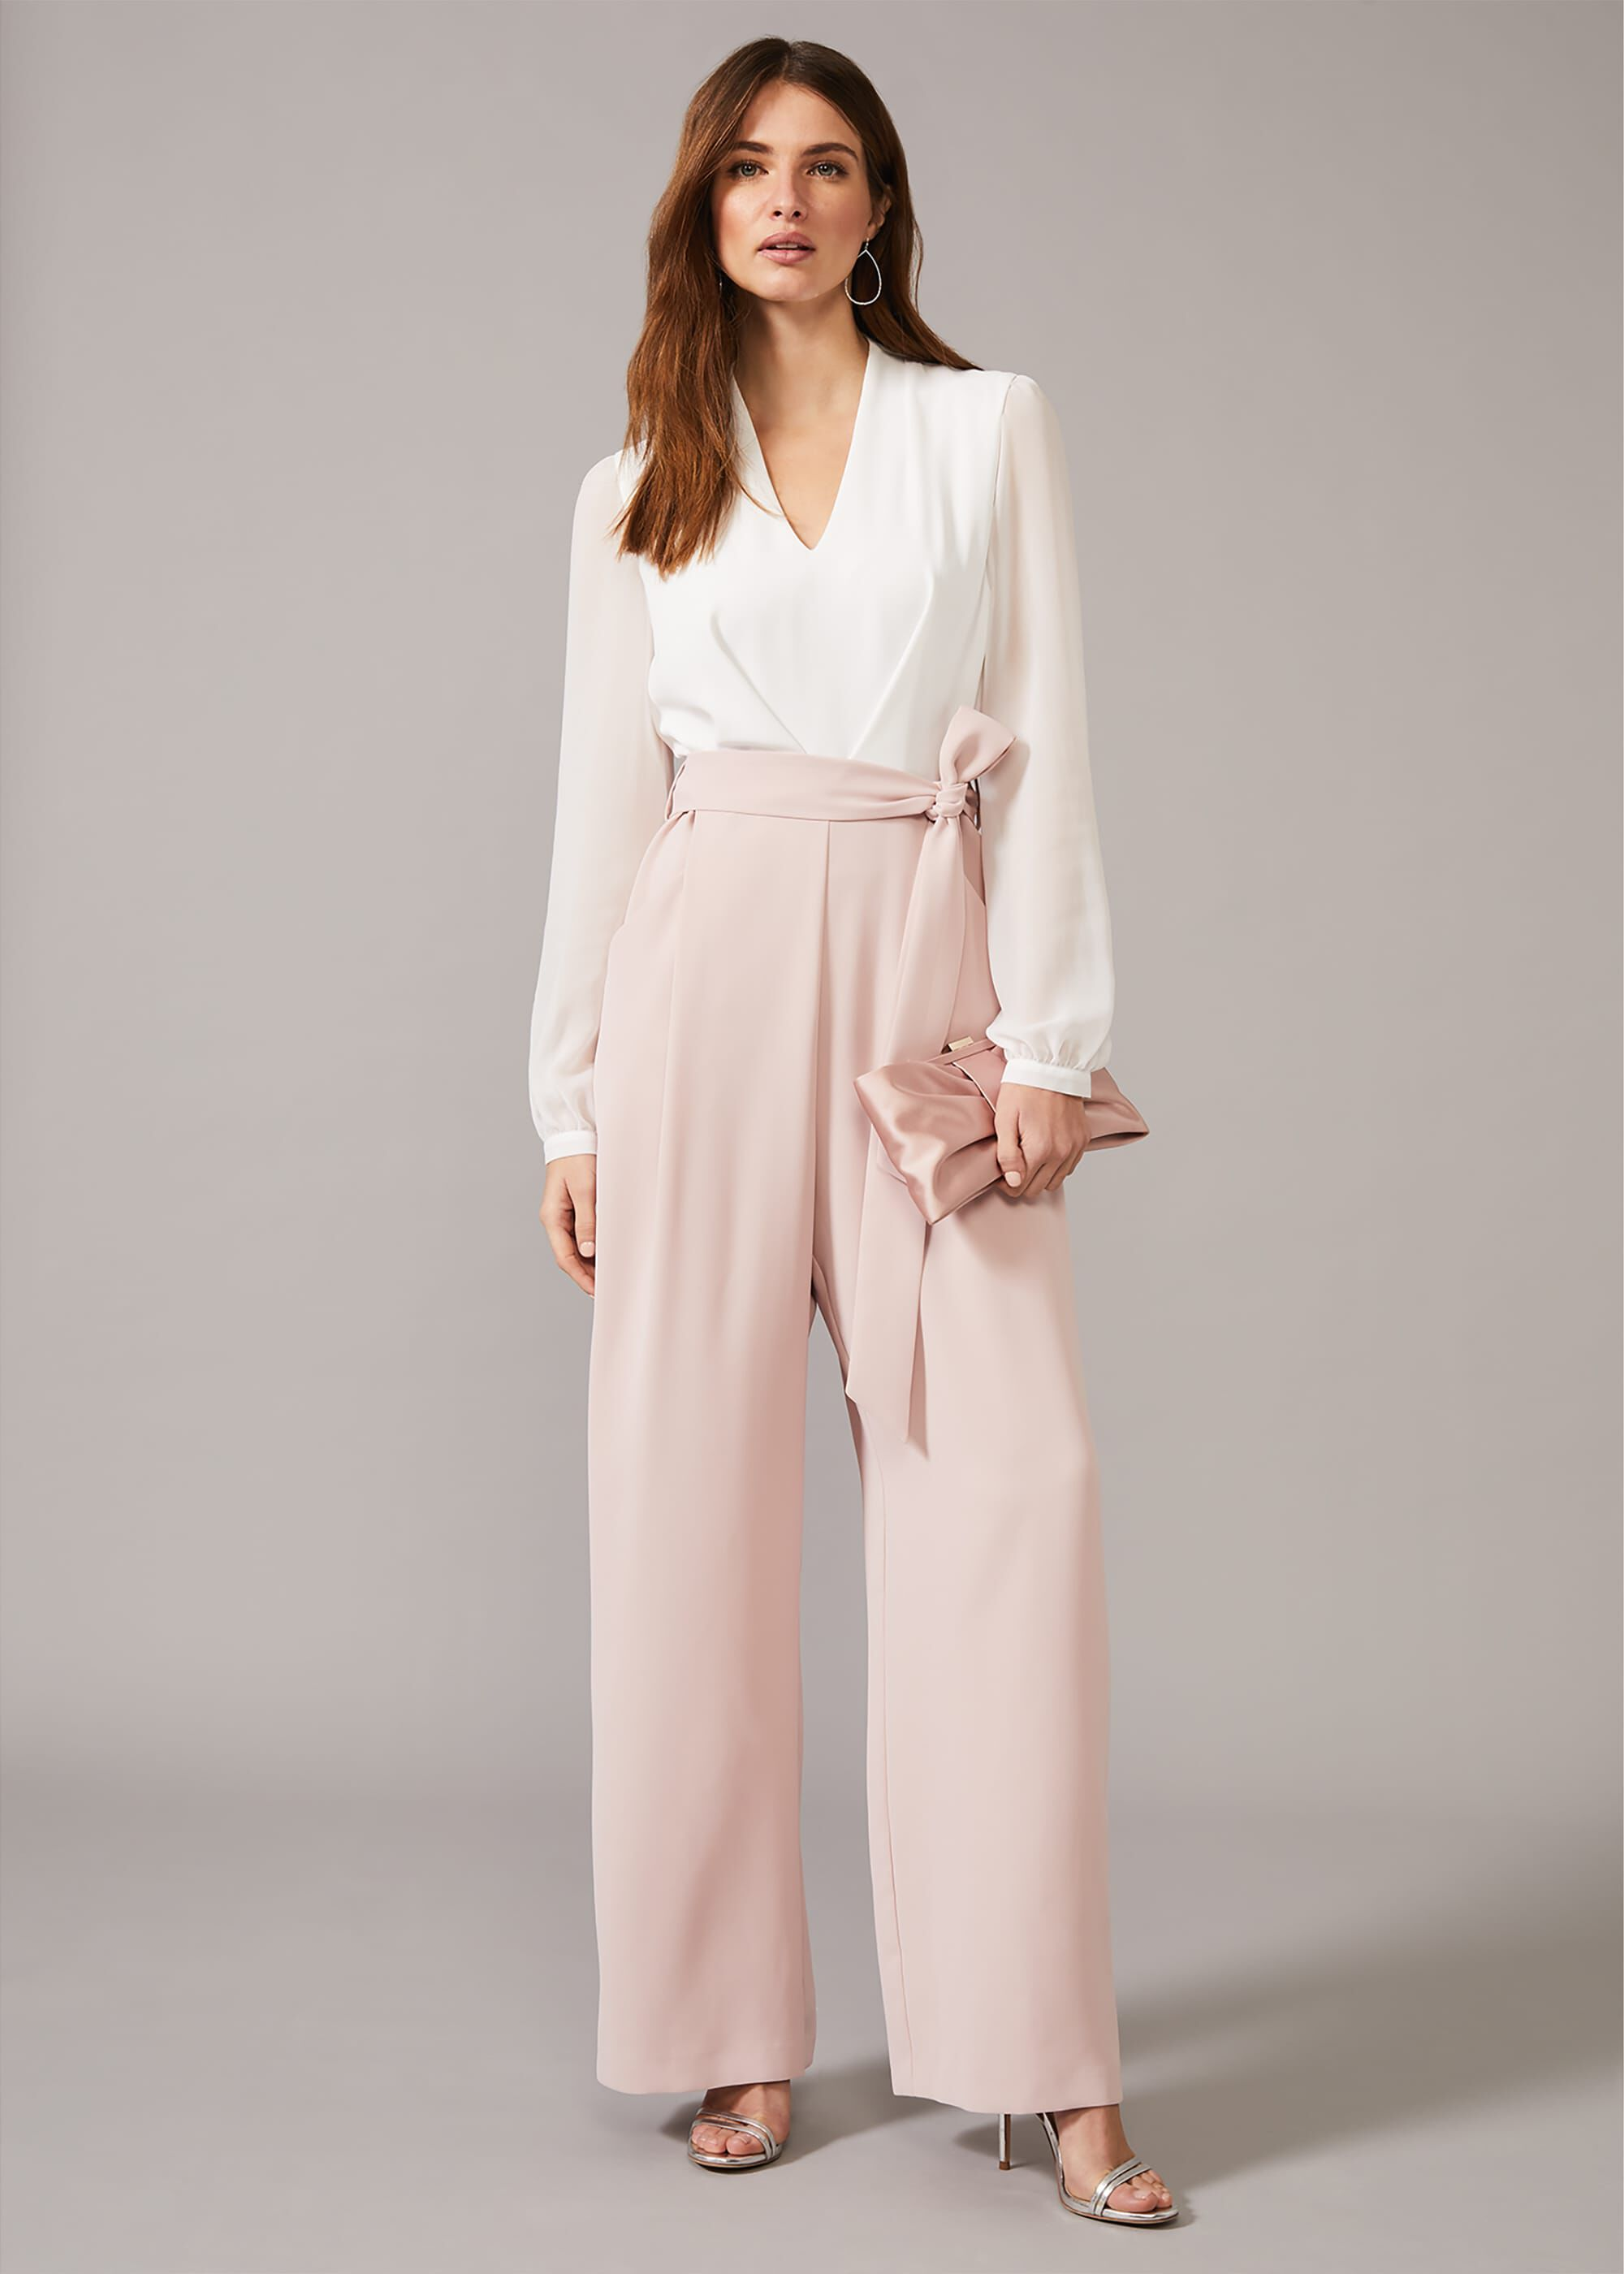 Phase Eight Audrey Blouson Sleeve Jumpsuit, Pink, Jumpsuit